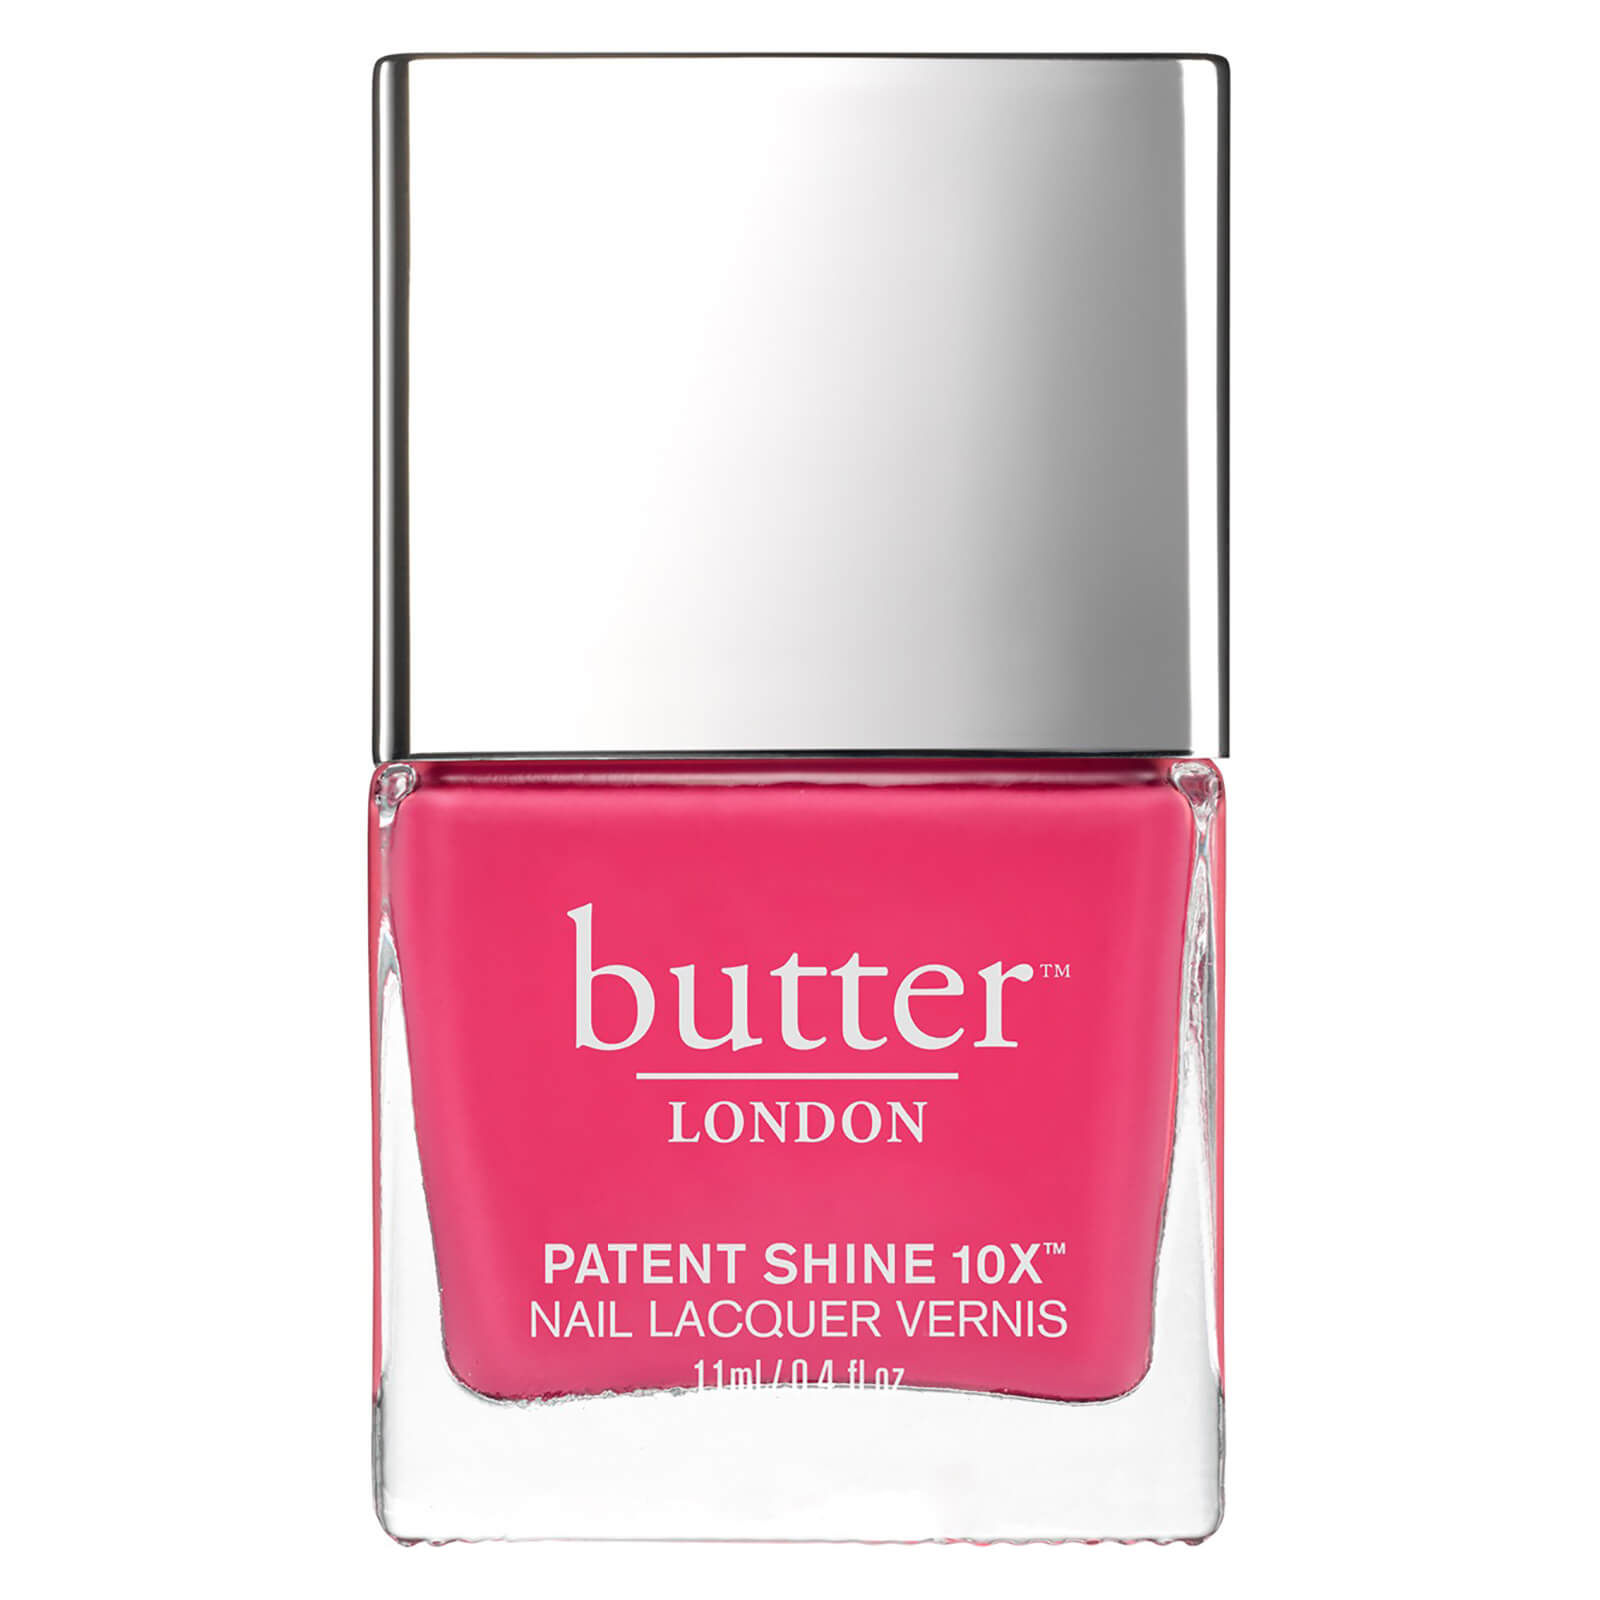 Butter London Patent Shine 10x Nail Lacquer 11ml Flusher Blusher Sleep Buddy Set Bed Cover Square Cotton Sateen Extra Product Description